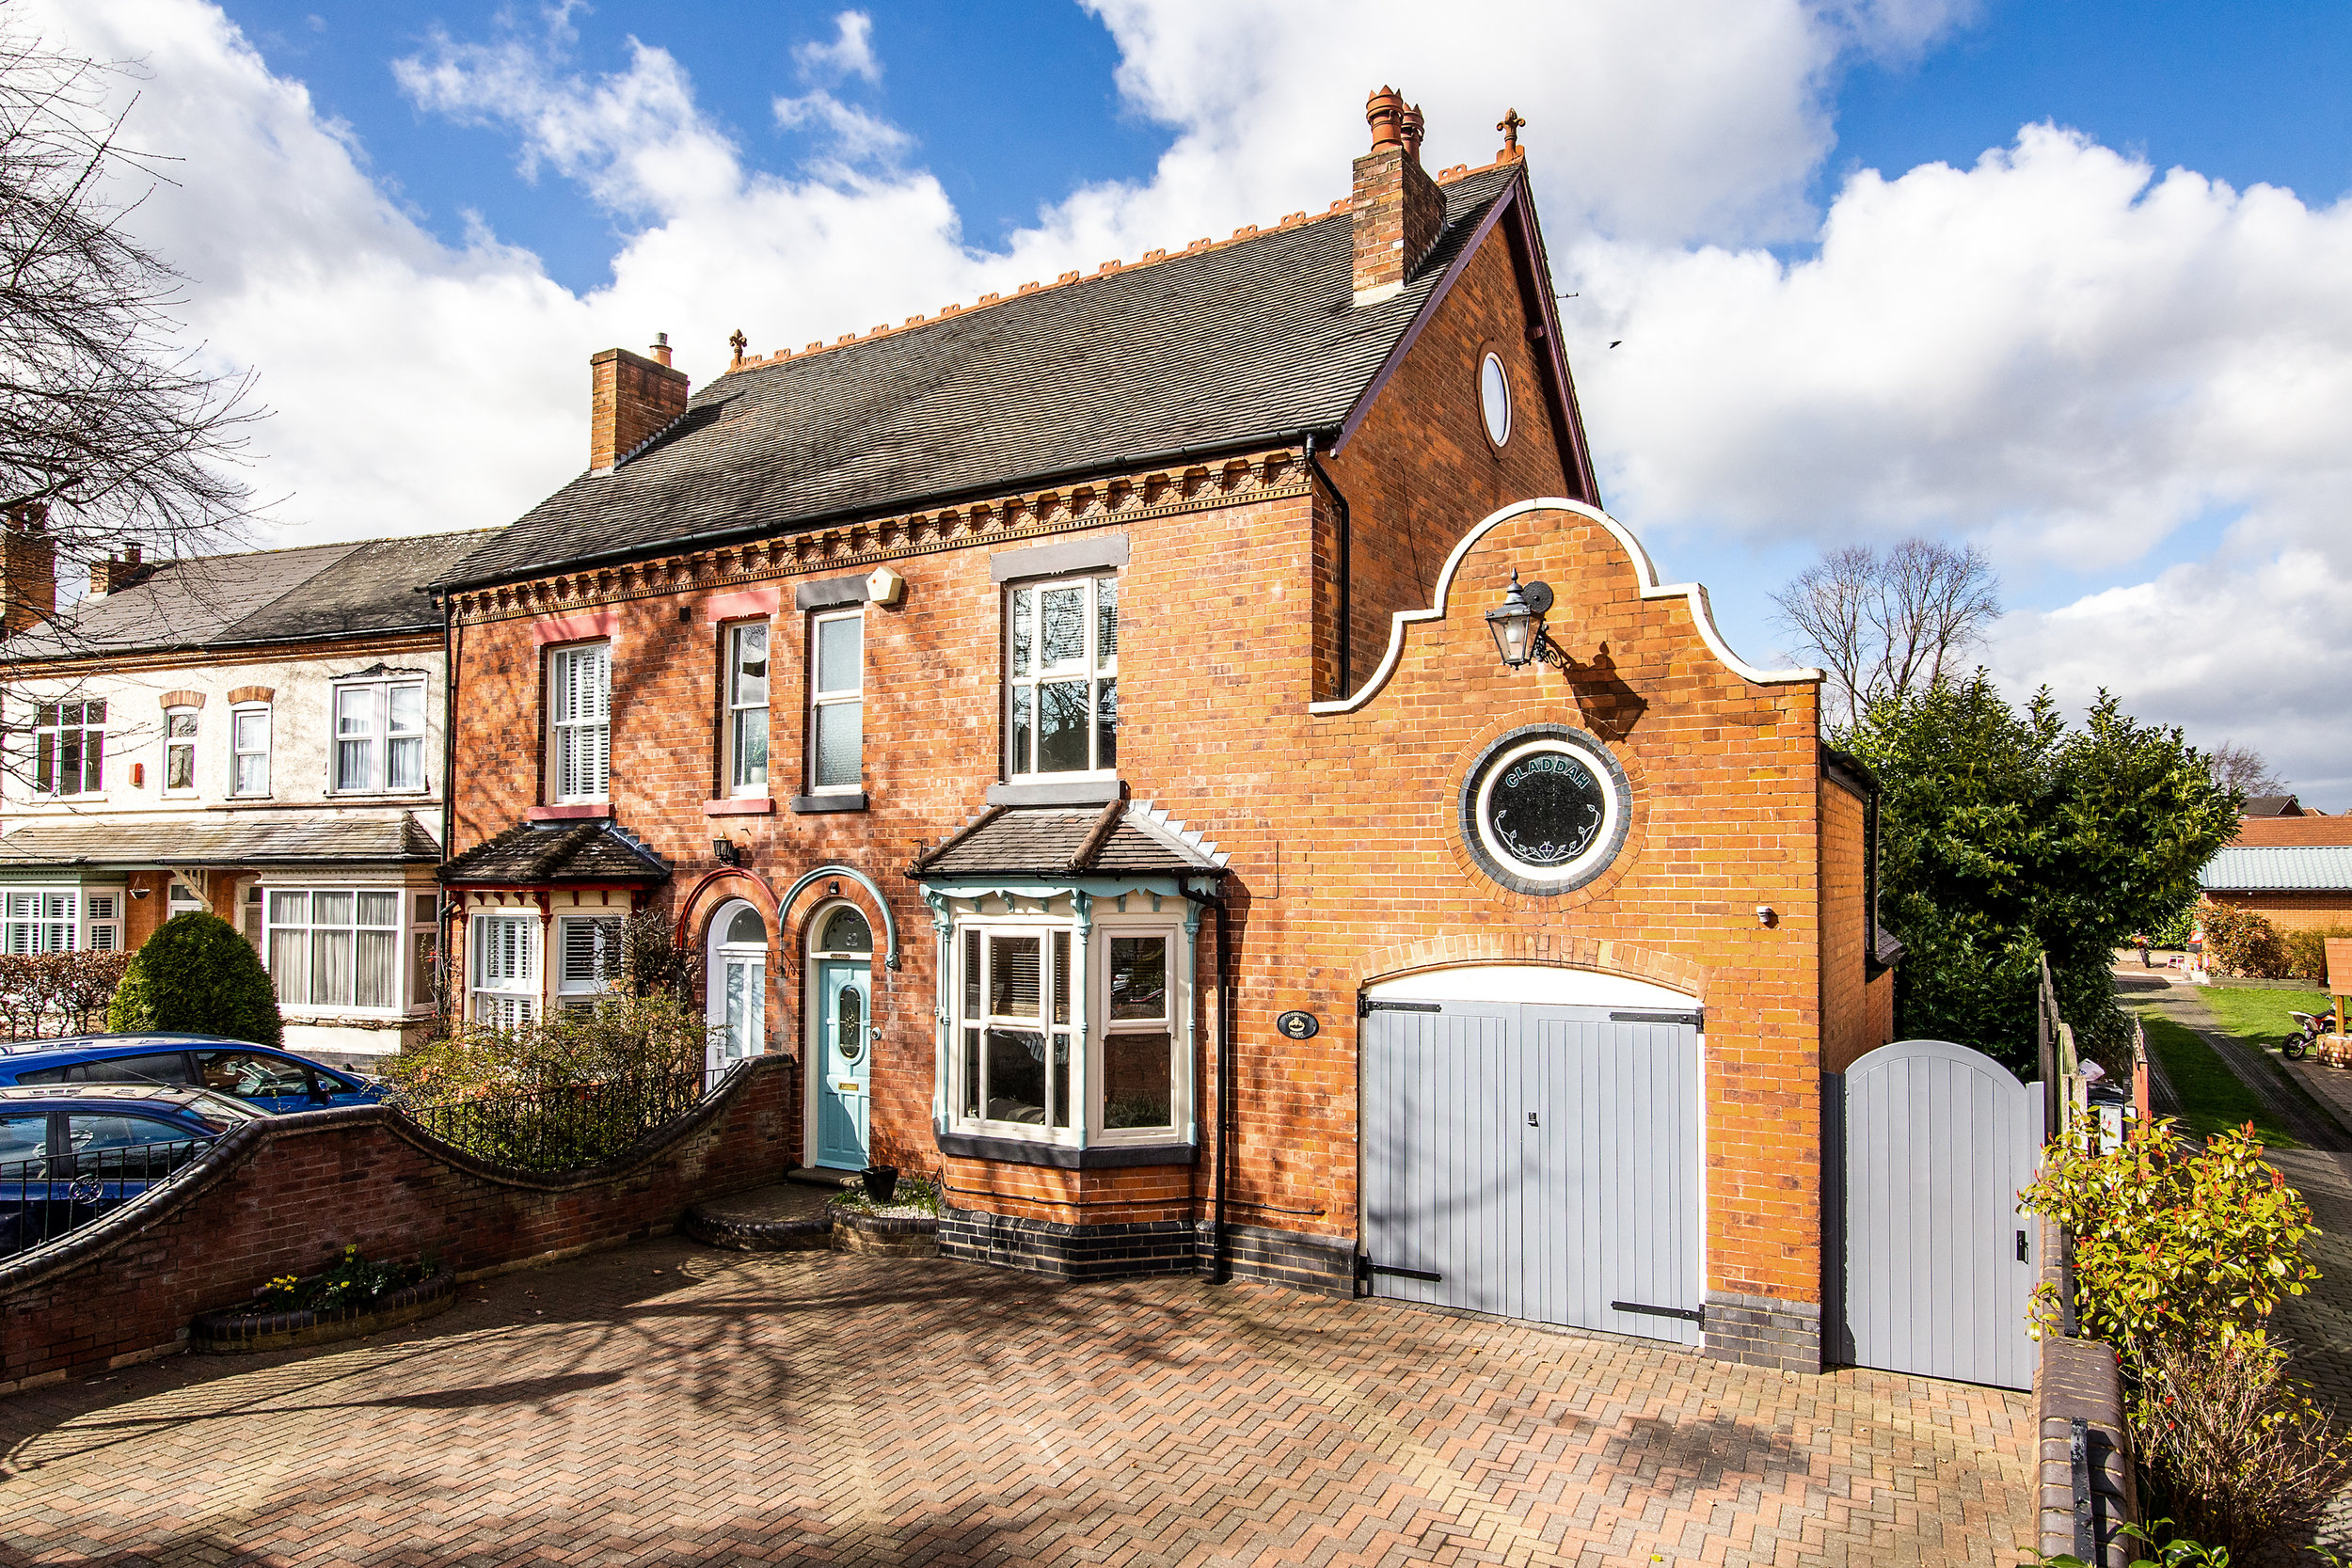 If you're on the hunt for somewhere to live, laugh, work and play, look no further. This property is the perfect hub for family life. Full of character and remarkably spacious, this beautiful four-bedroom home in a peaceful Sutton Coldfield suburb, will tick all of your boxes.